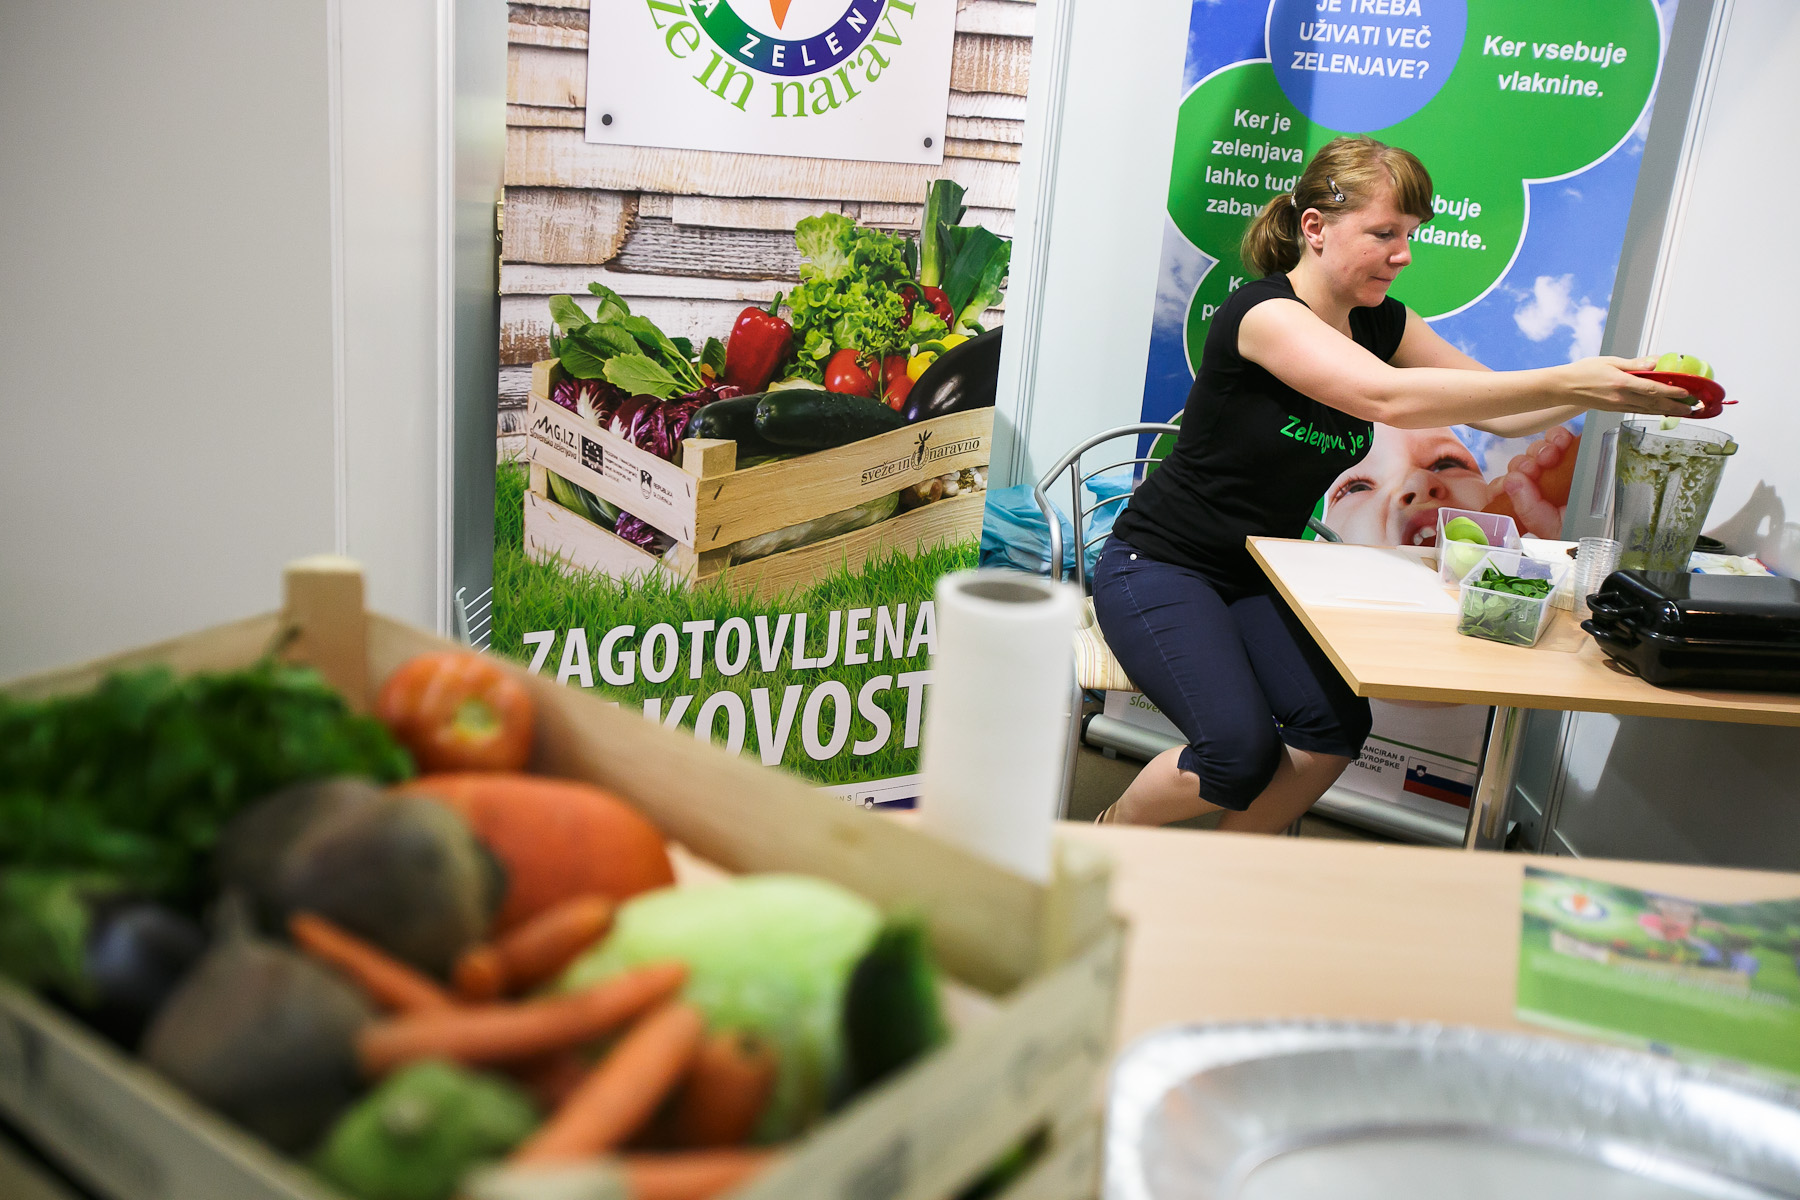 A woman makes a smoothie at the 53rd agricultural fair Agra in Gornja Radgona, Slovenia, Aug. 22, 2015.